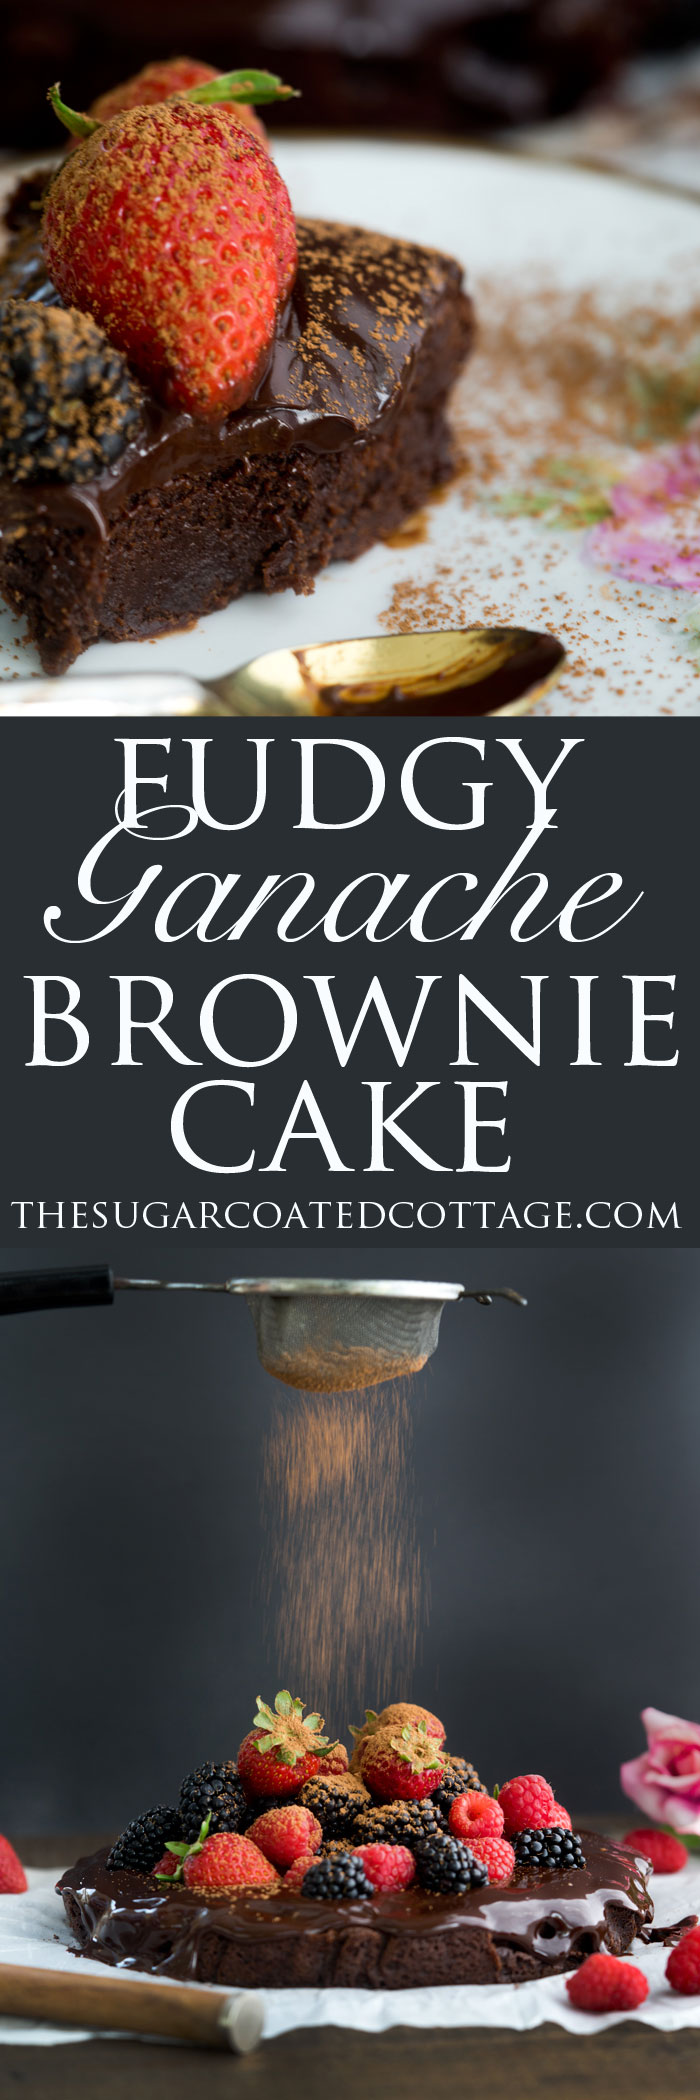 Fudgy Ganache Brownie Cake. Rich fudgy brownie slathered in creamy ganache and topped with fresh berries. | thesugarcoatedcottage.com #brownies #cake